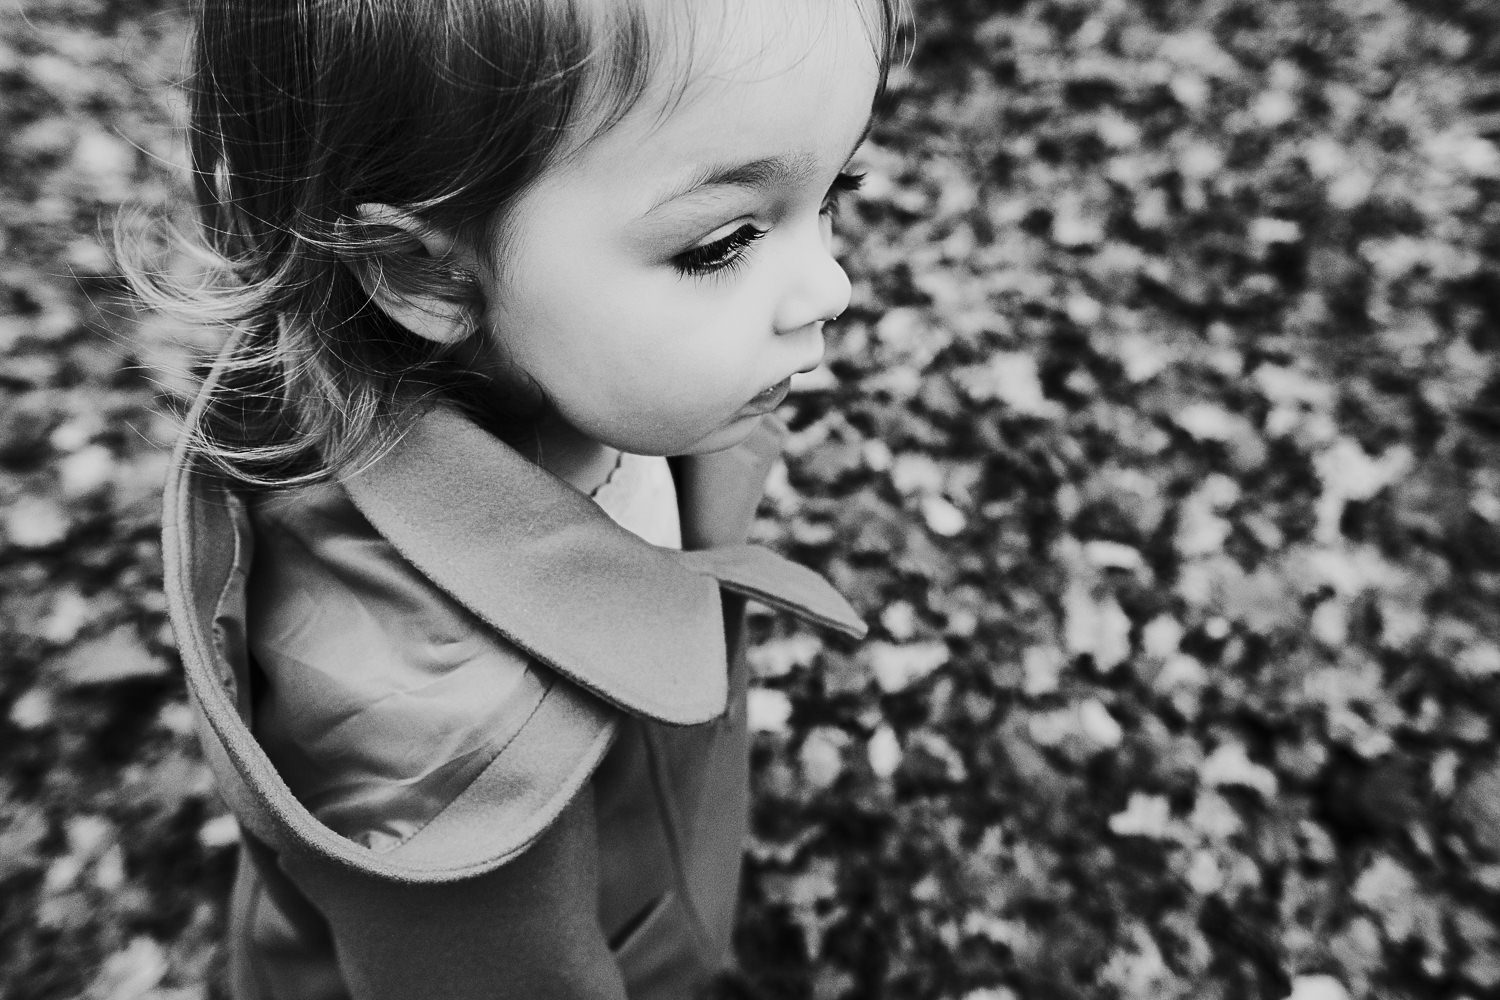 Black and white photo toddler girl in woods